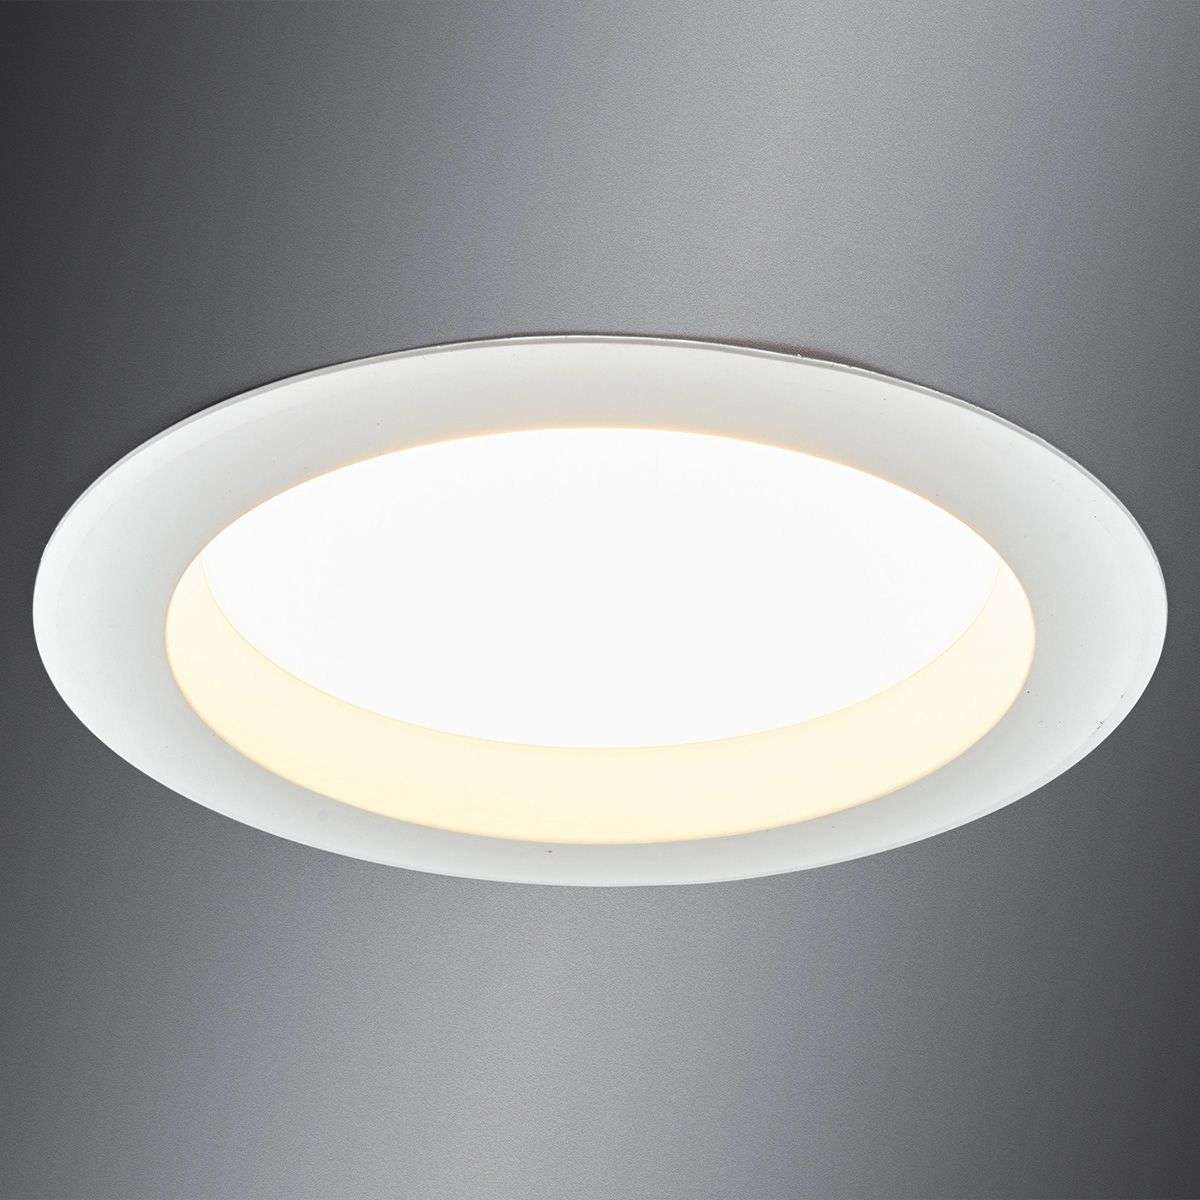 Led recessed ceiling light arian 174 cm 15 w lights led recessed ceiling light arian 174 cm 15 w aloadofball Images